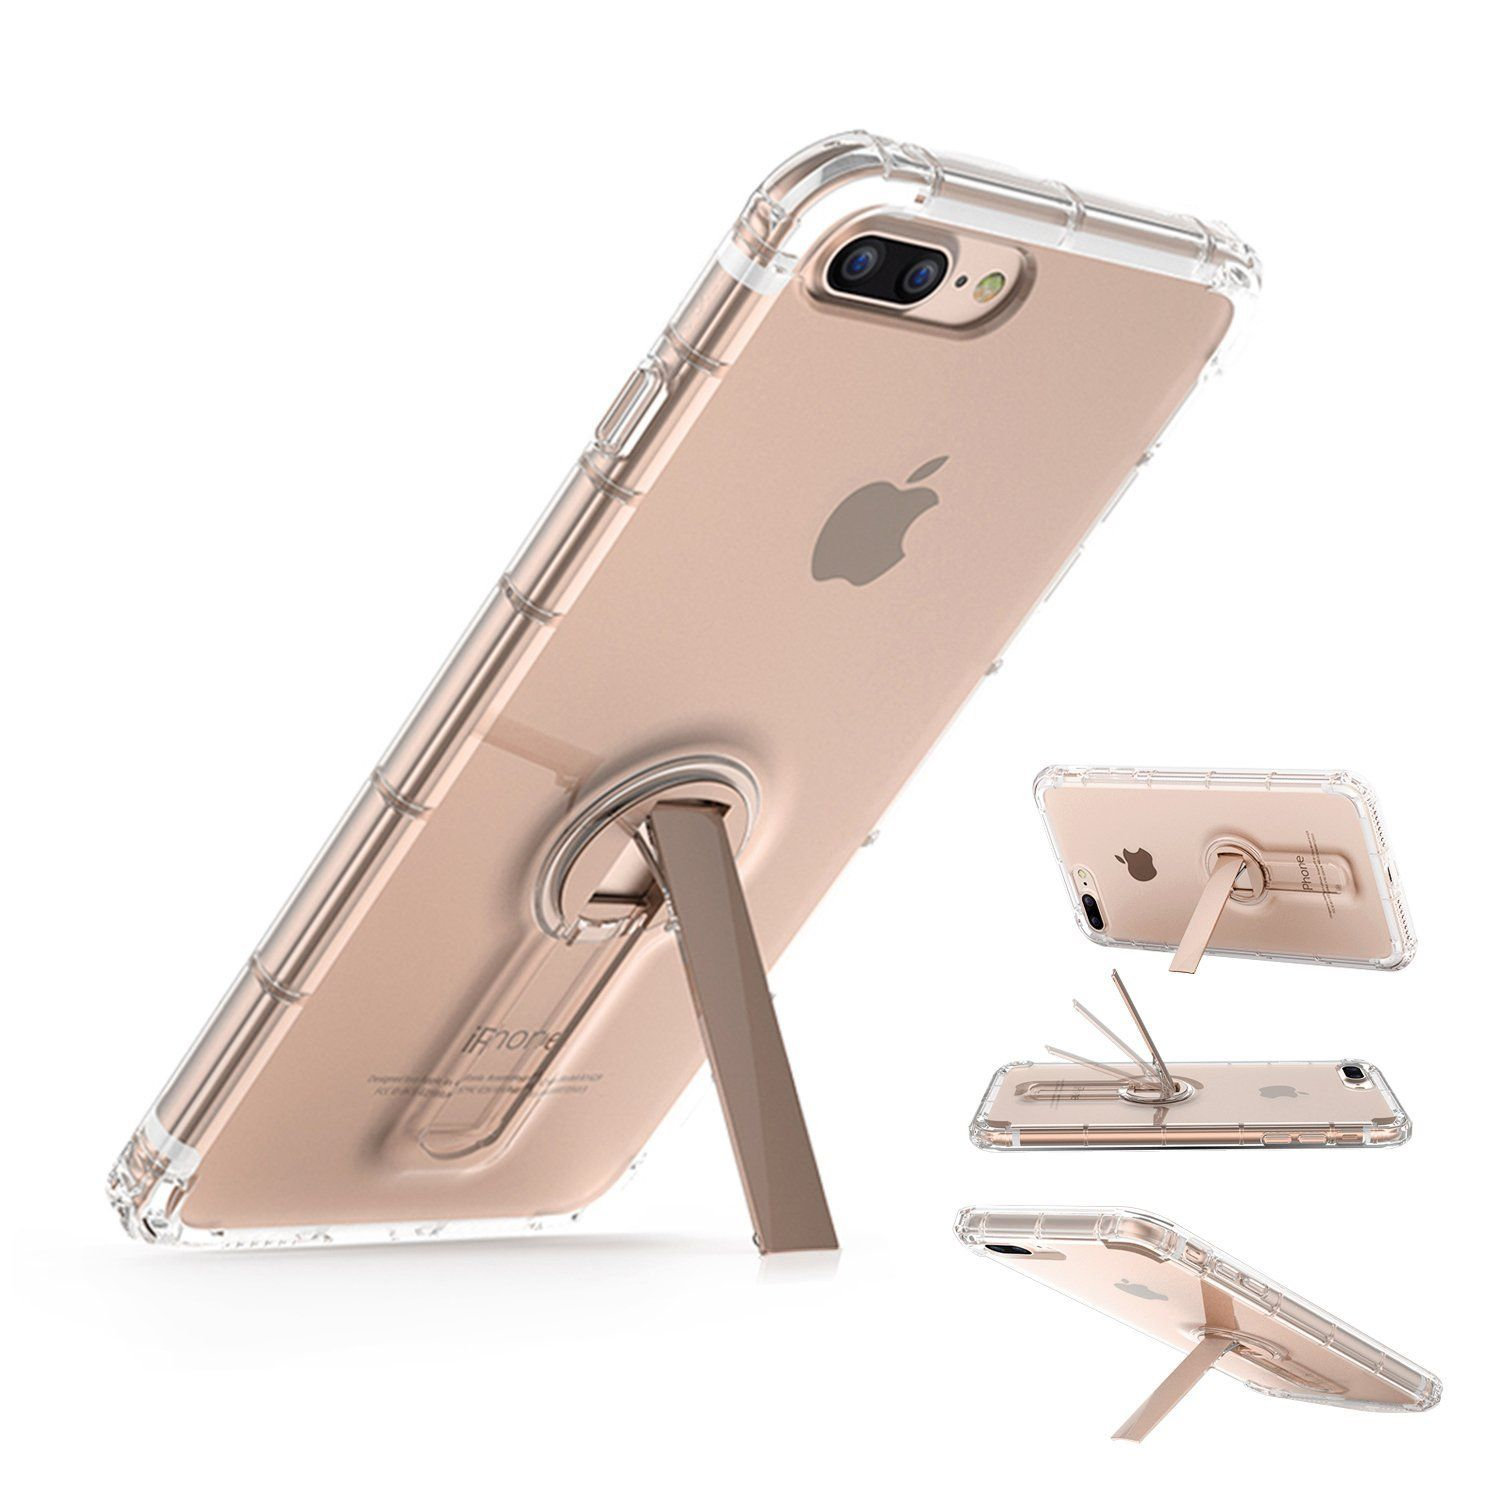 Newseego iPhone 7 Plus Case / iPhone 8 Plus Case With